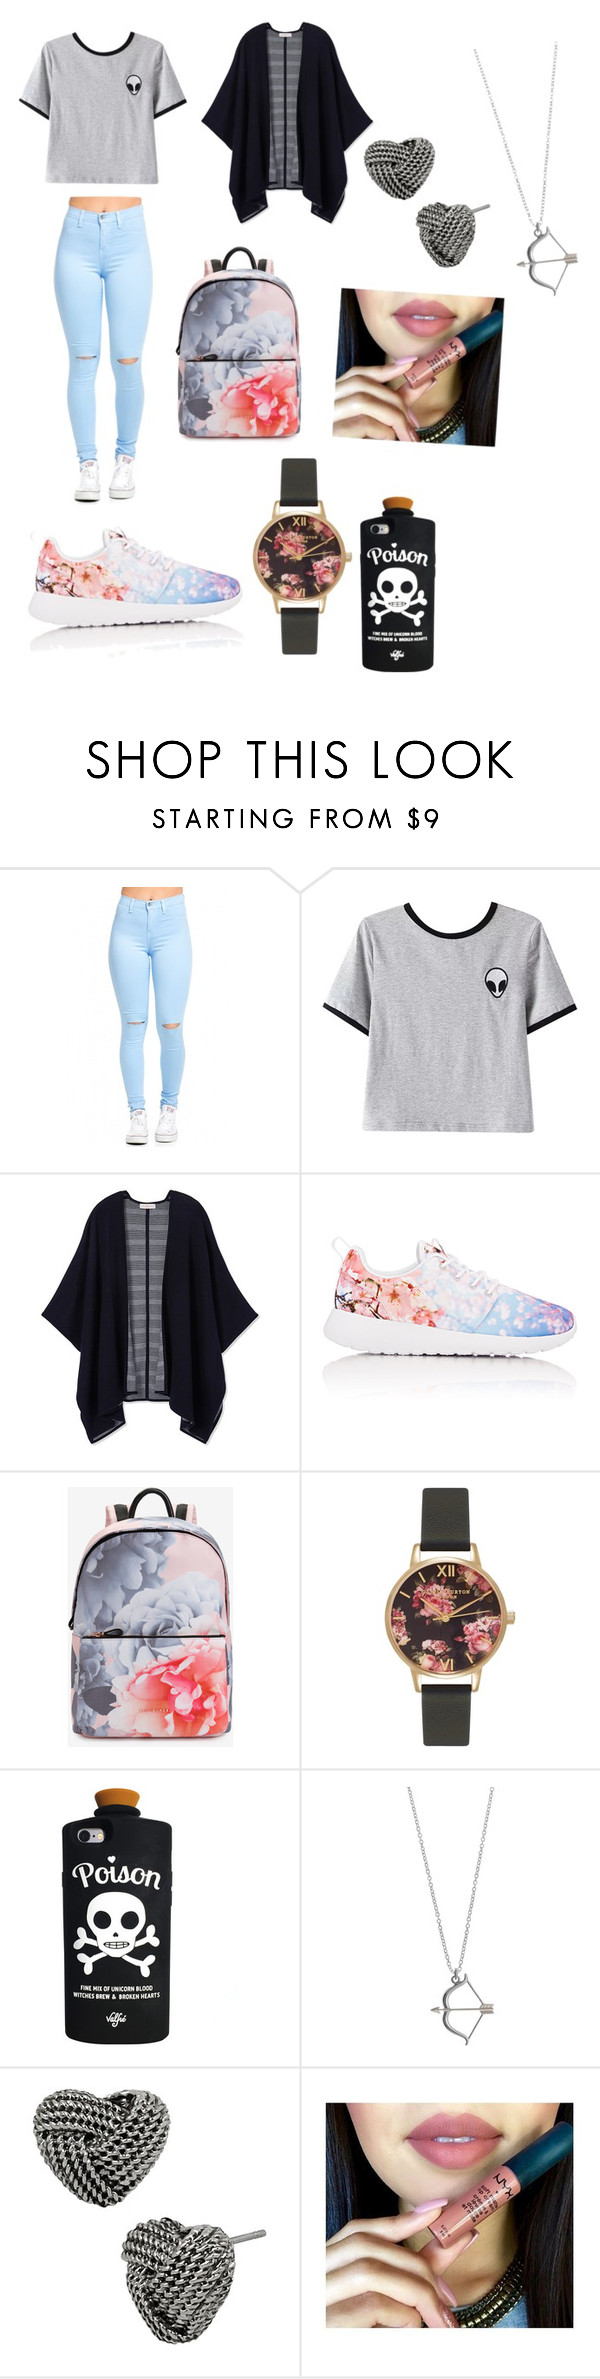 """""""just ma flaws"""" by magconloma on Polyvore featuring Chicnova Fashion, Tory Burch, NIKE, Ted Baker, Olivia Burton, Valfré and Betsey Johnson"""